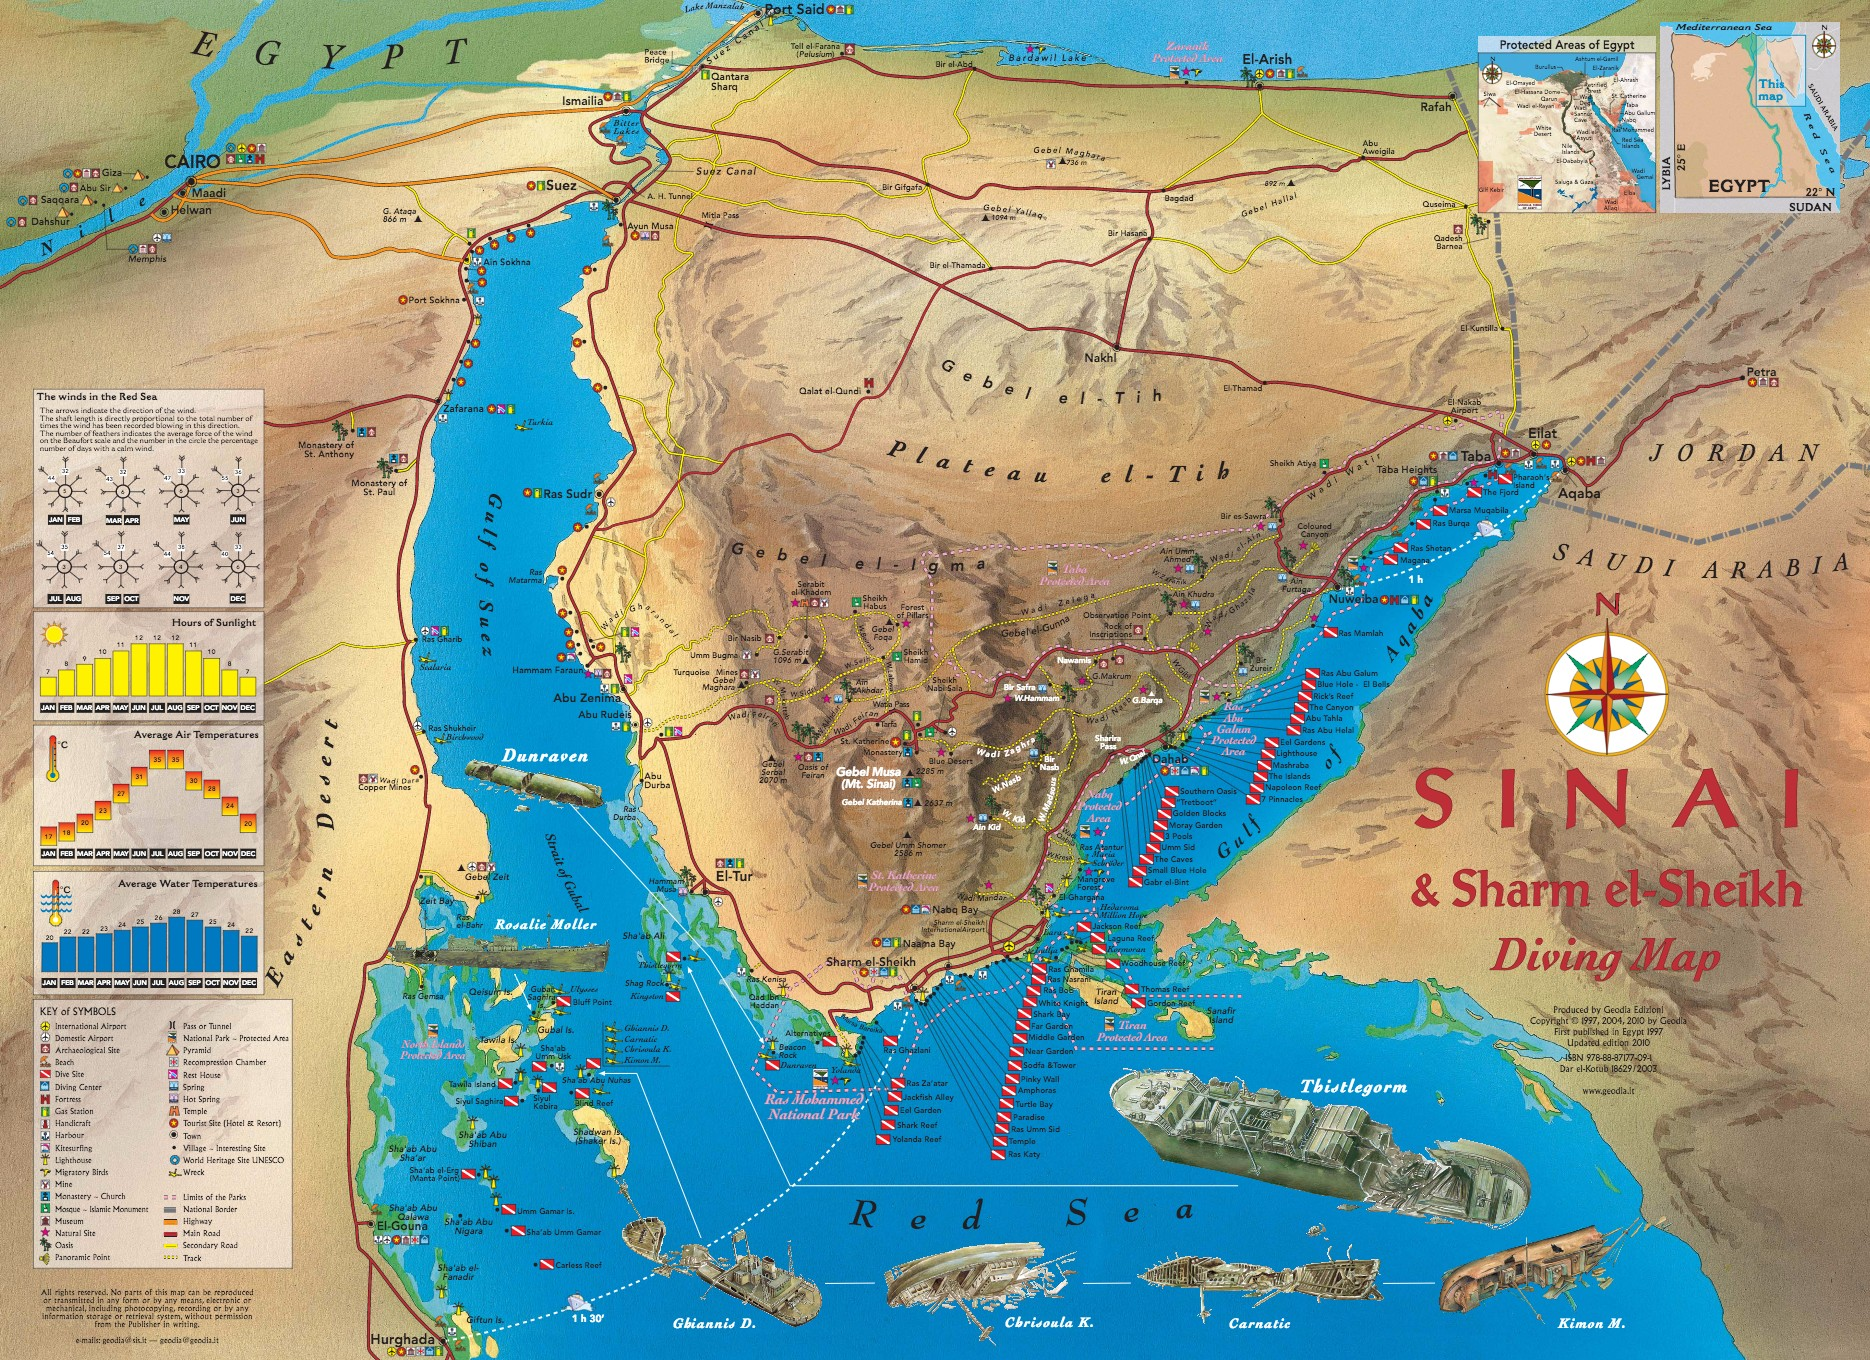 geodia guide e libri sul mondo  sinai  sharm el sheikh diving map - page page